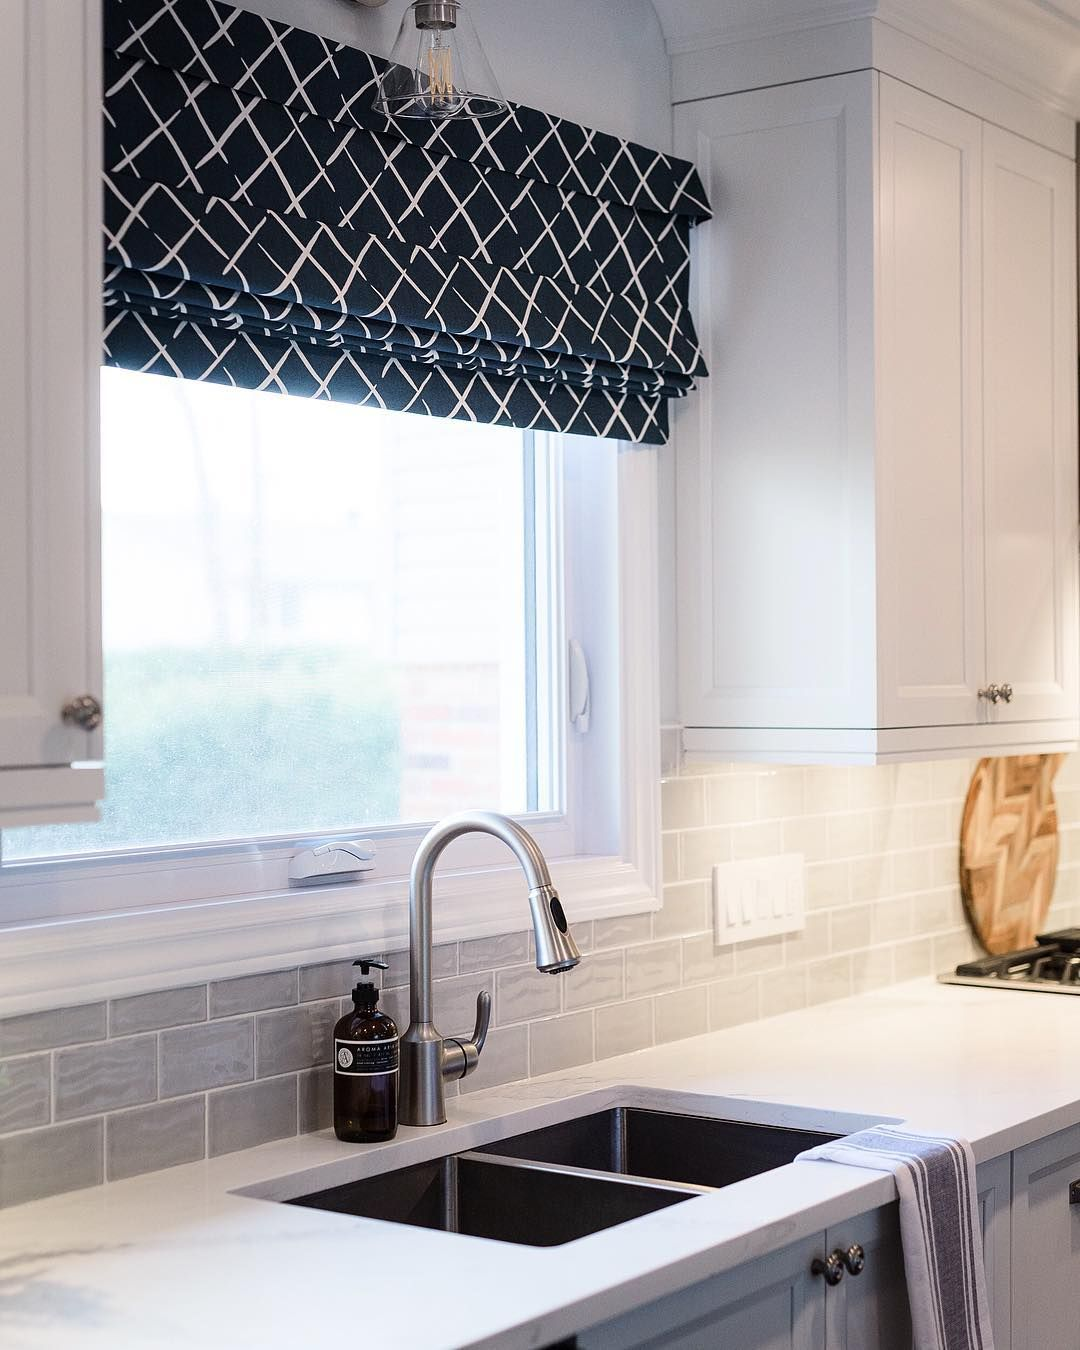 New The 10 Best Home Decor With Pictures Kitchen Views From